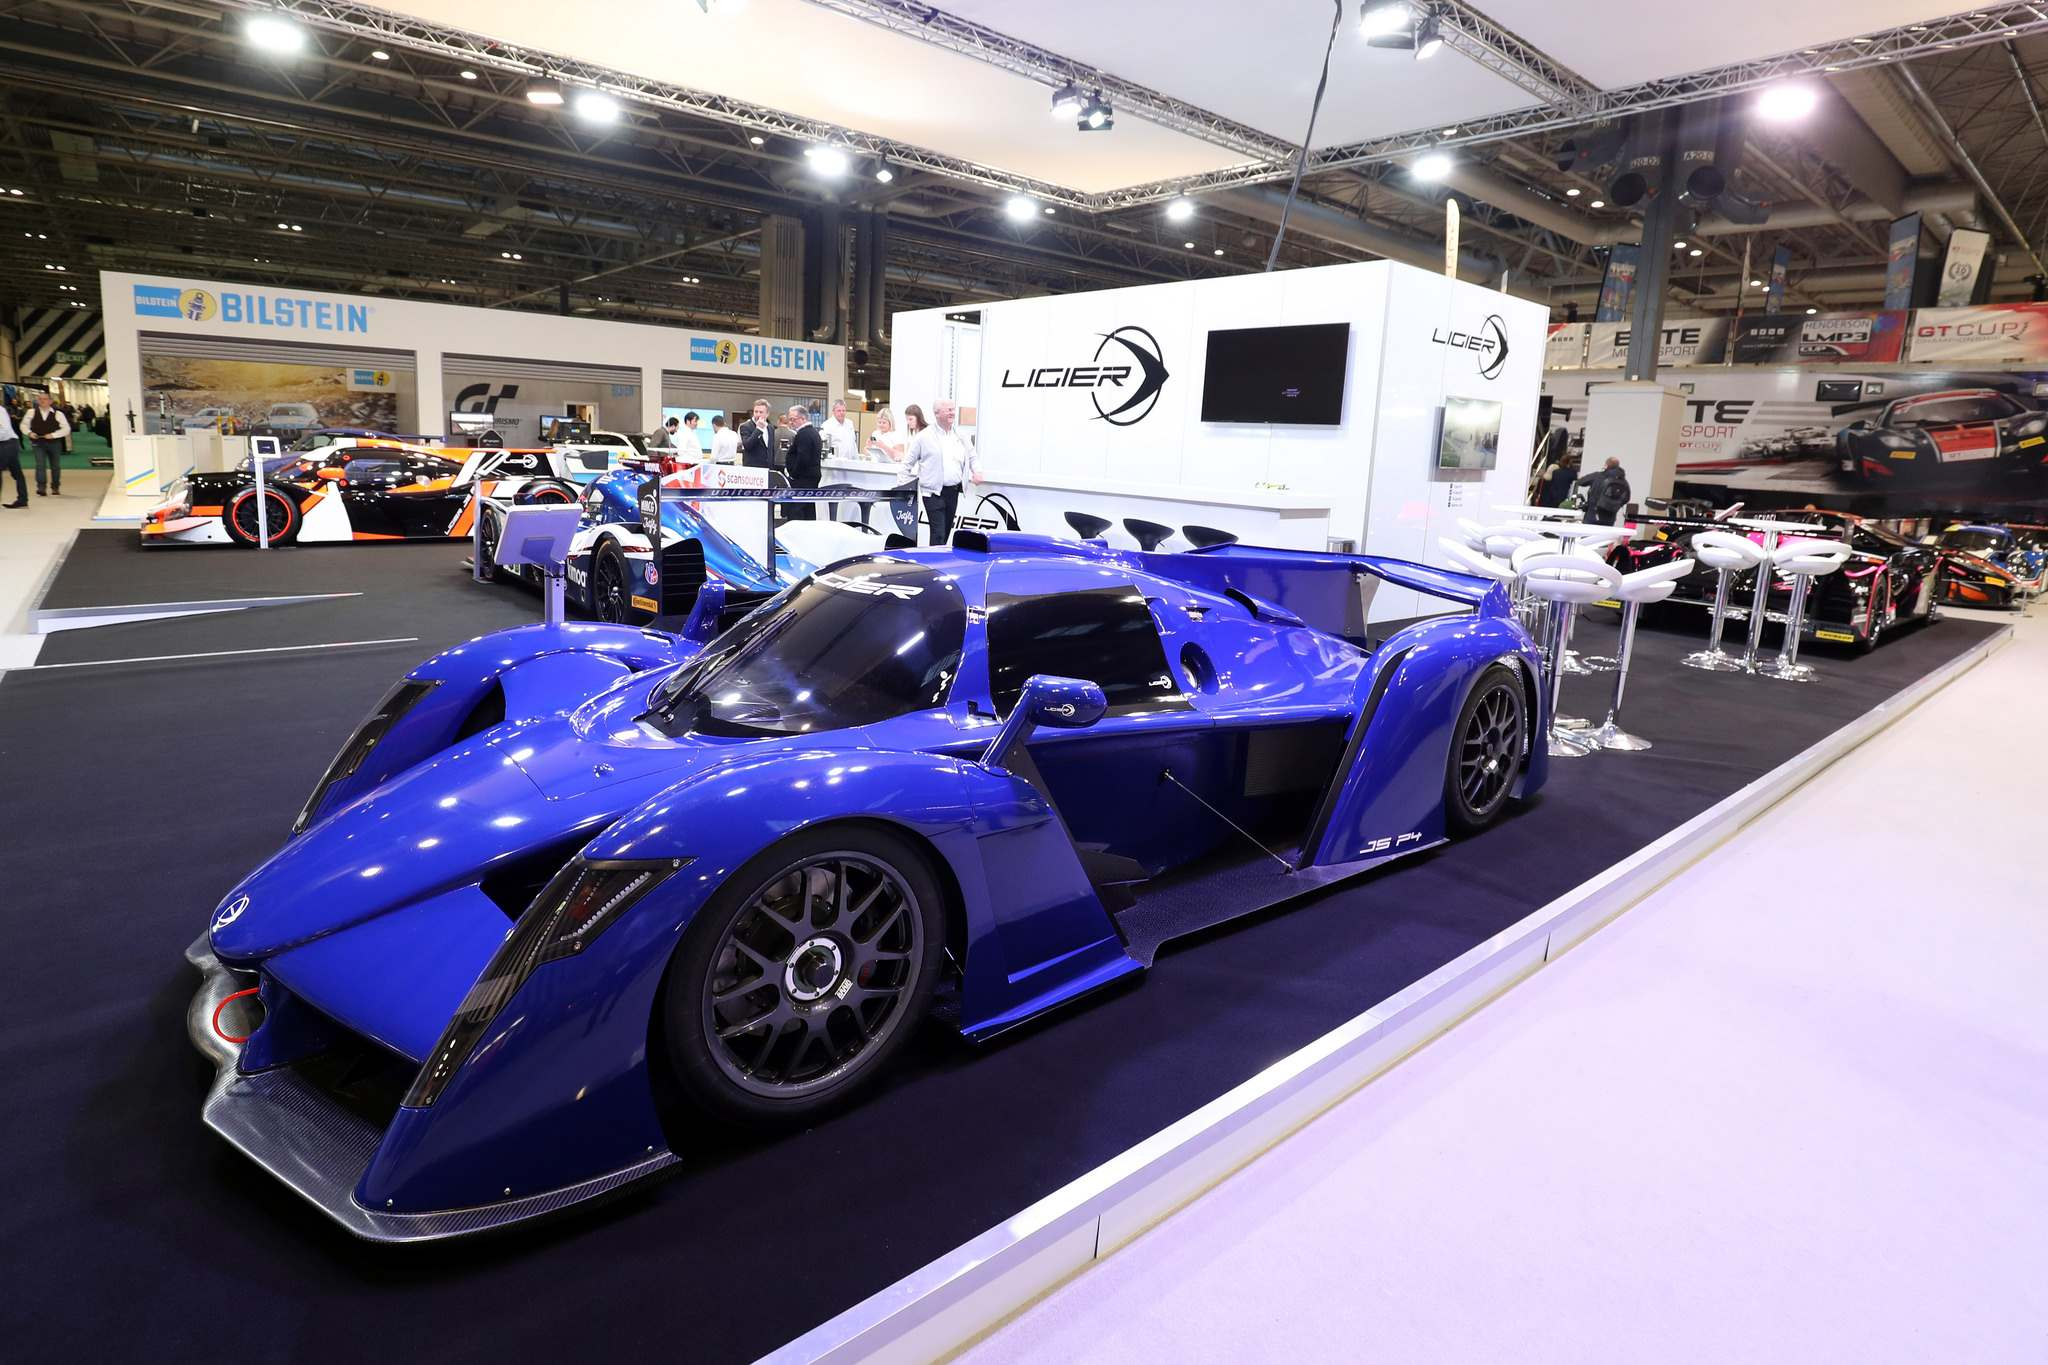 ligier 201815 Ligier at Autosport International Show 2018